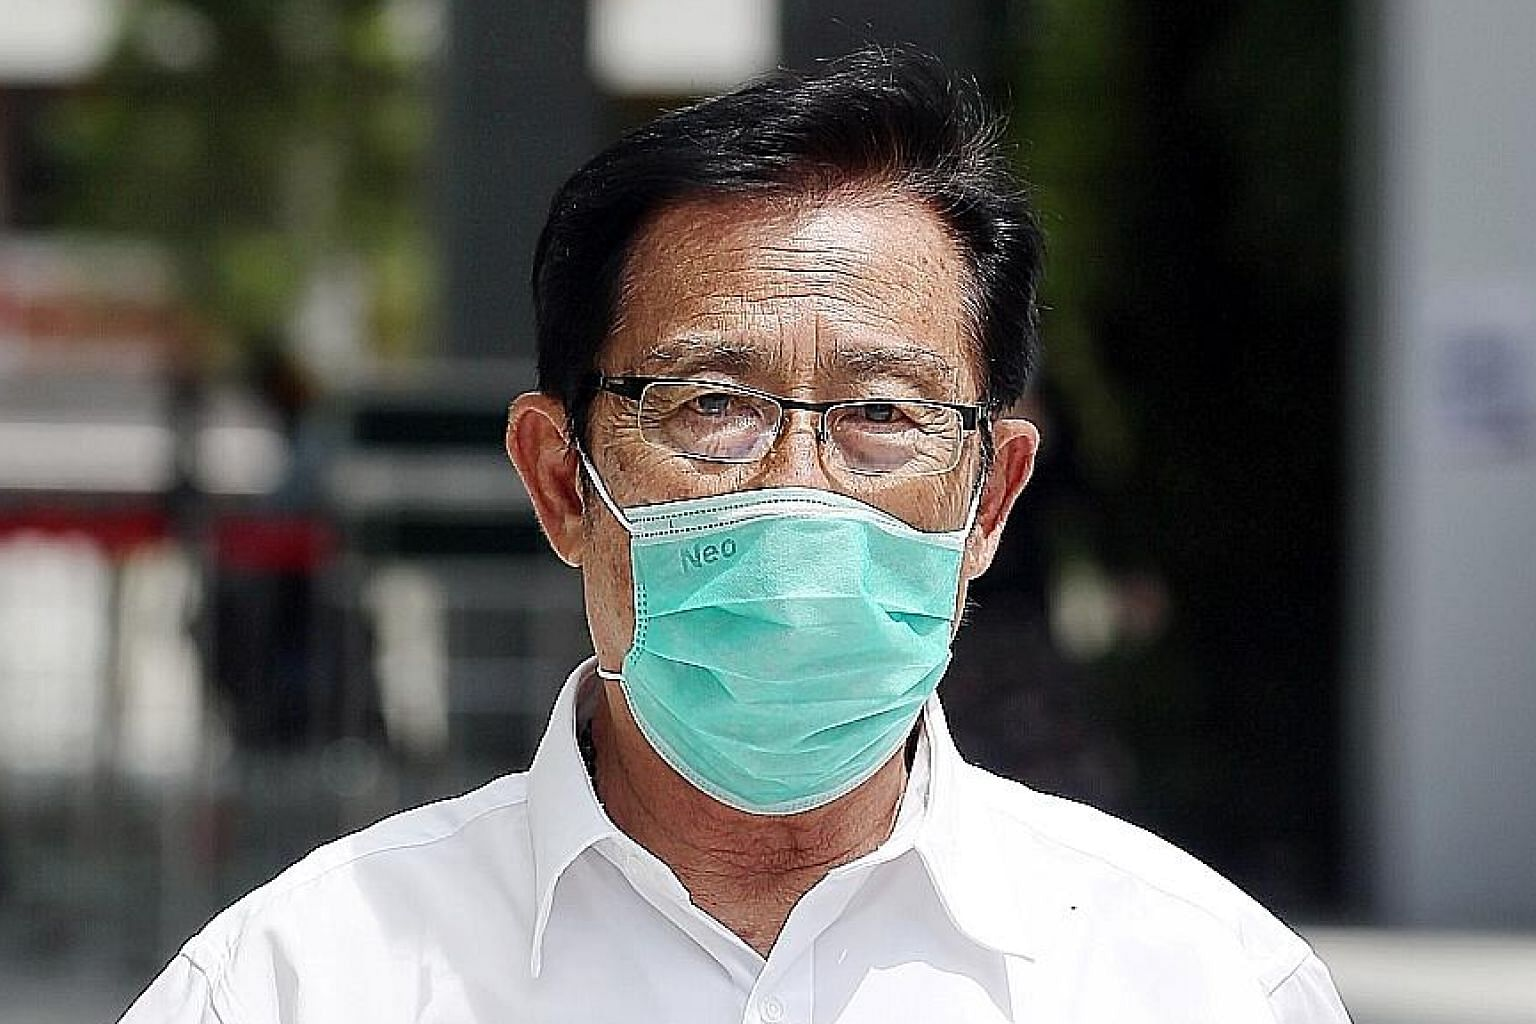 Loh Siang Piow, better known in the sports fraternity as Loh Chan Pew, says he will be lodging an appeal.